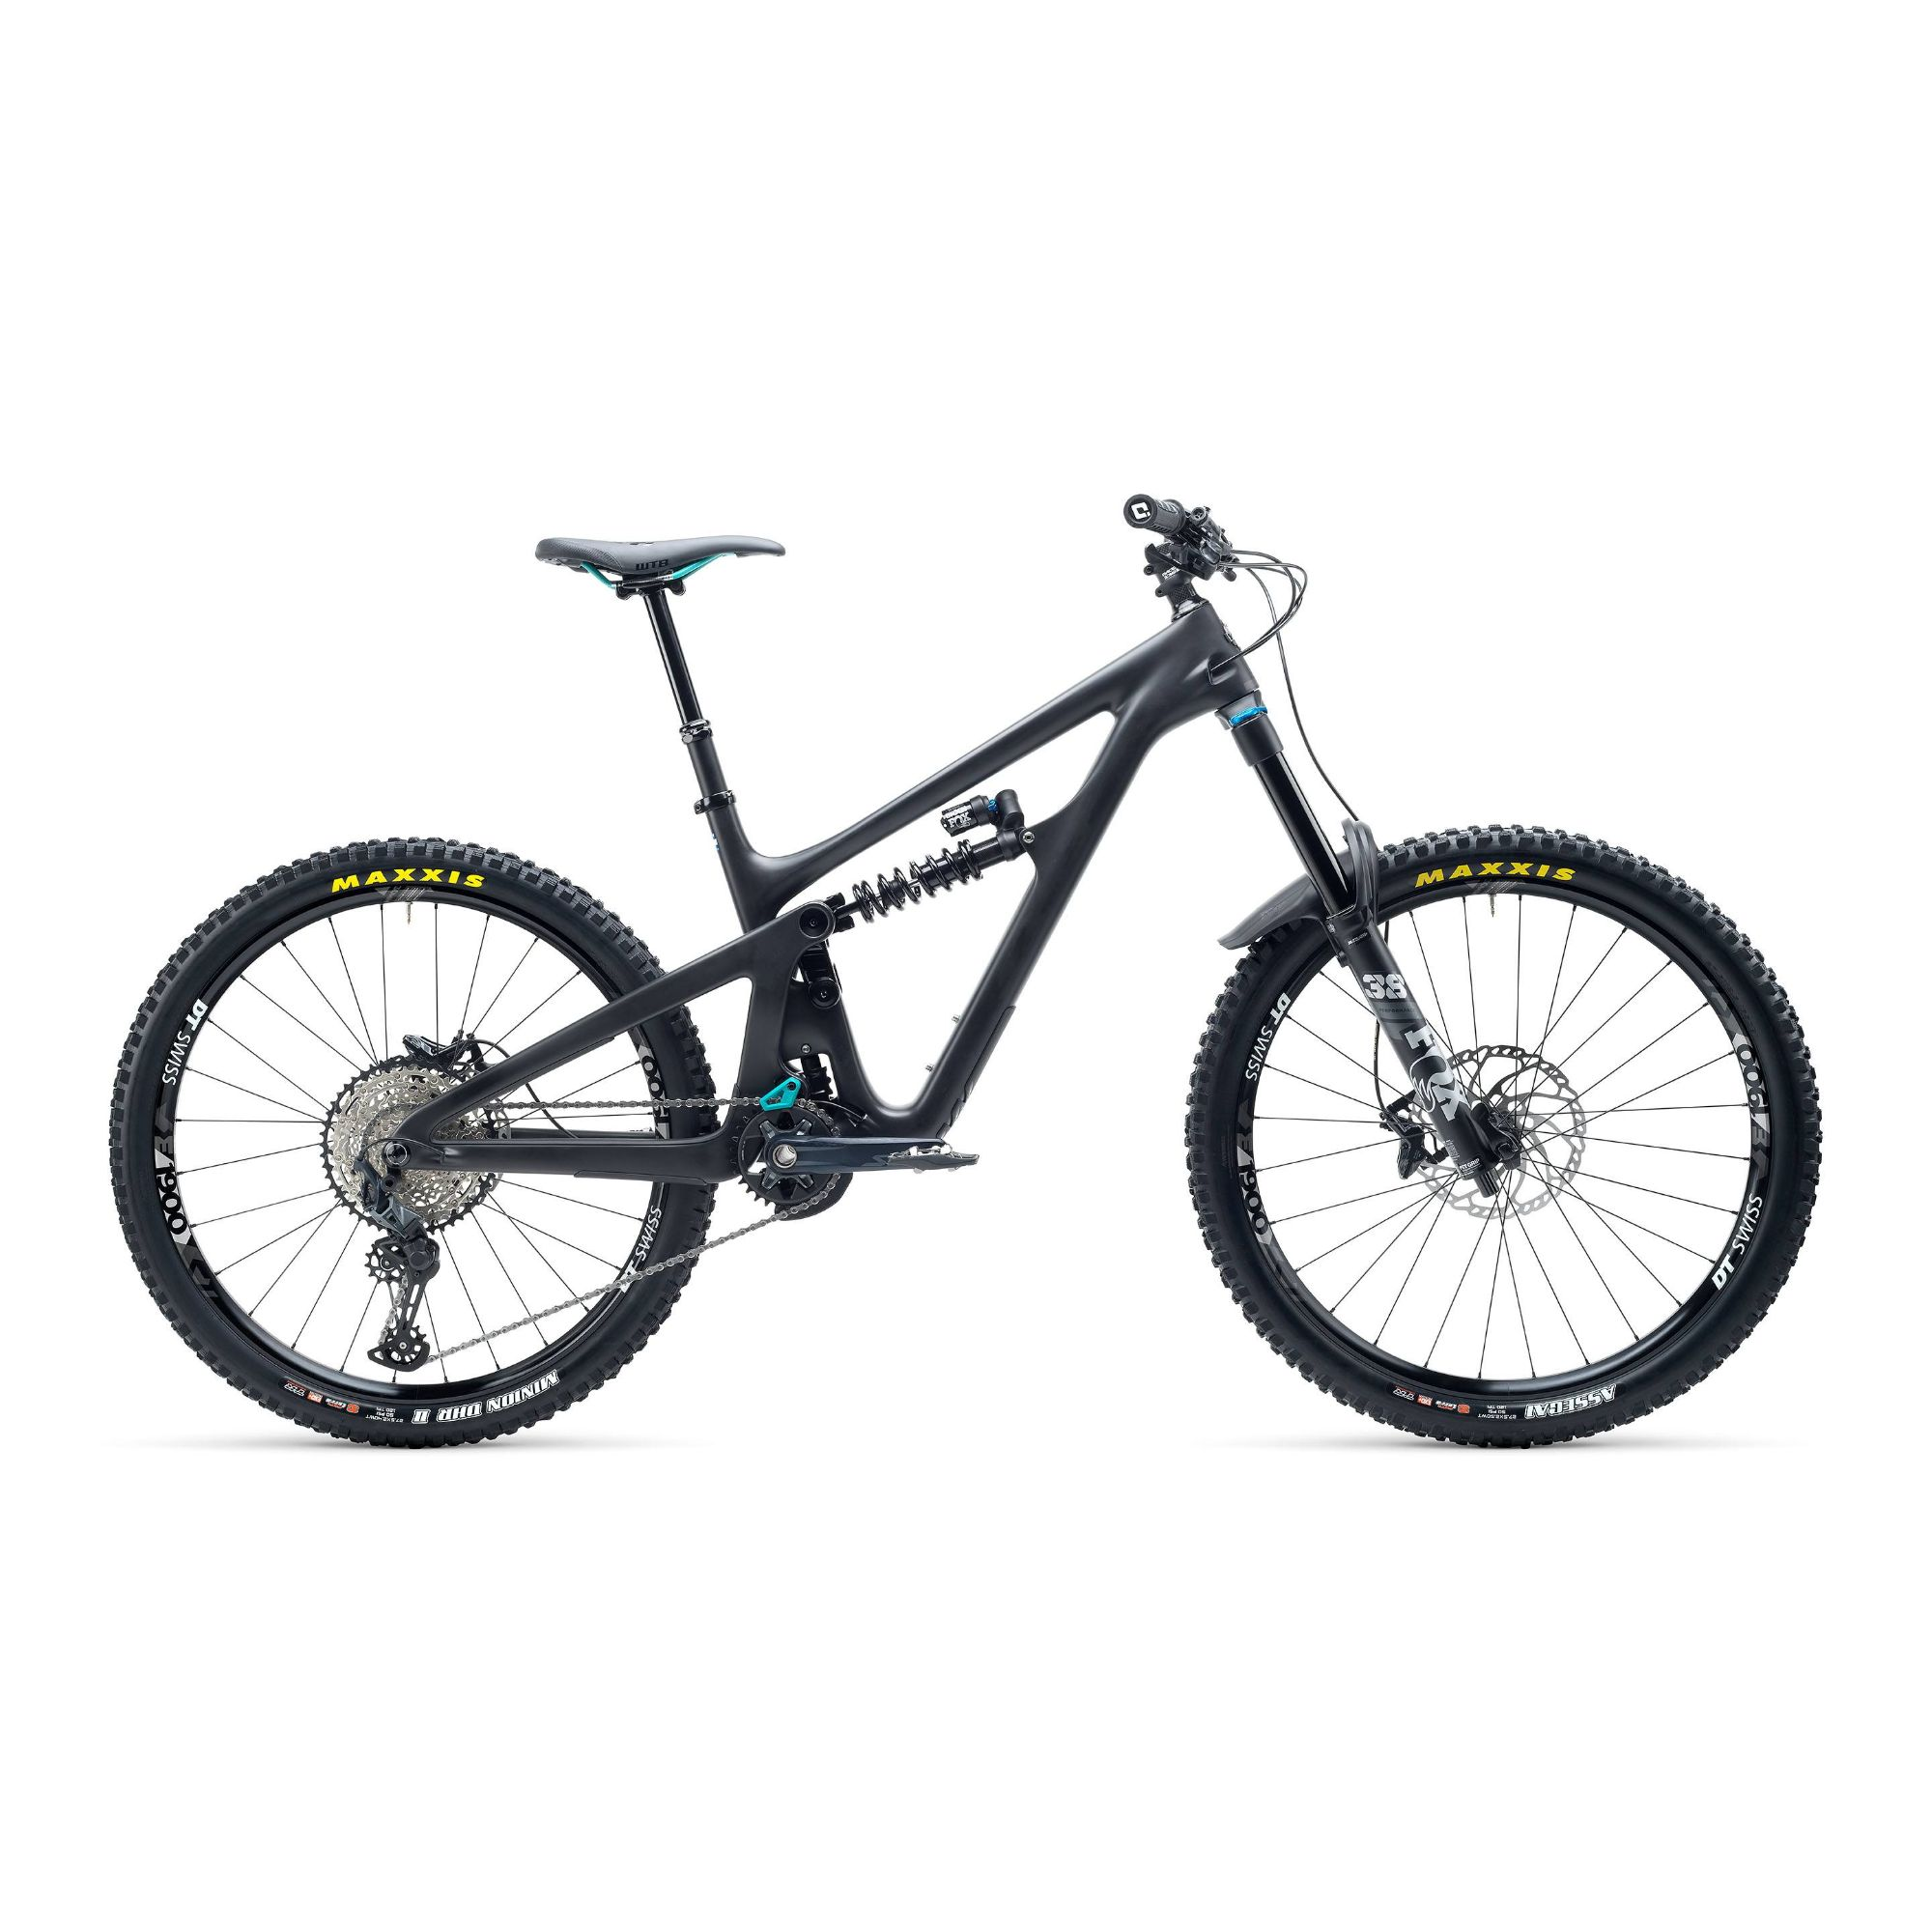 Yeti SB165 C Series C1 27.5 SLX Carbon Mountain Bike 2021 Raw / Grey